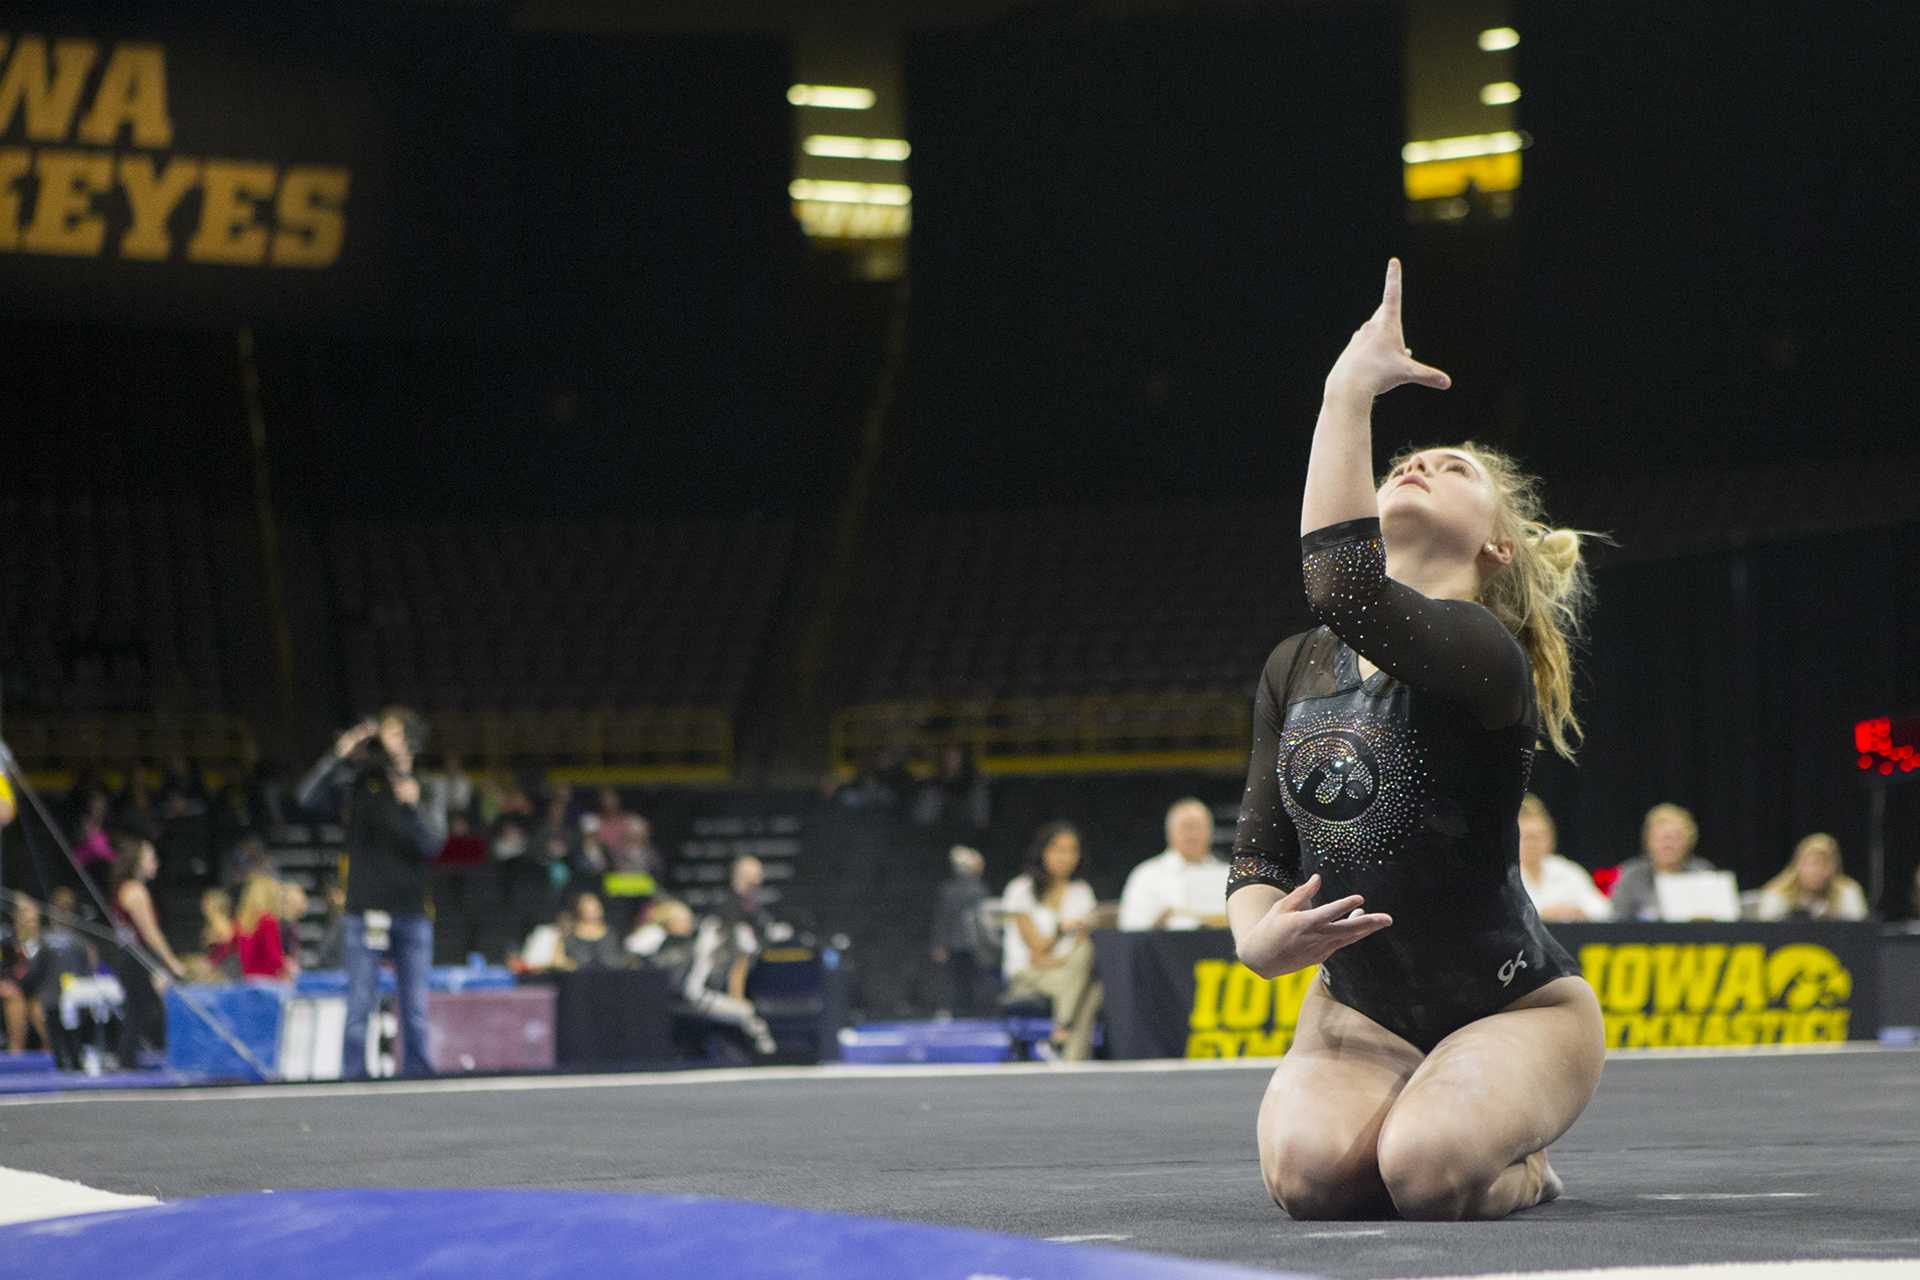 Iowa's Charlotte Sullivan performs on the floor during the Iowa/Ohio State gymnastics meet in Carver-Hawkeye Arena on Friday, Jan. 19, 2018. The GymHawks defeated the Buckeyes, 195.725 to 195.300, to win their home opener. (Lily Smith/The Daily Iowan)